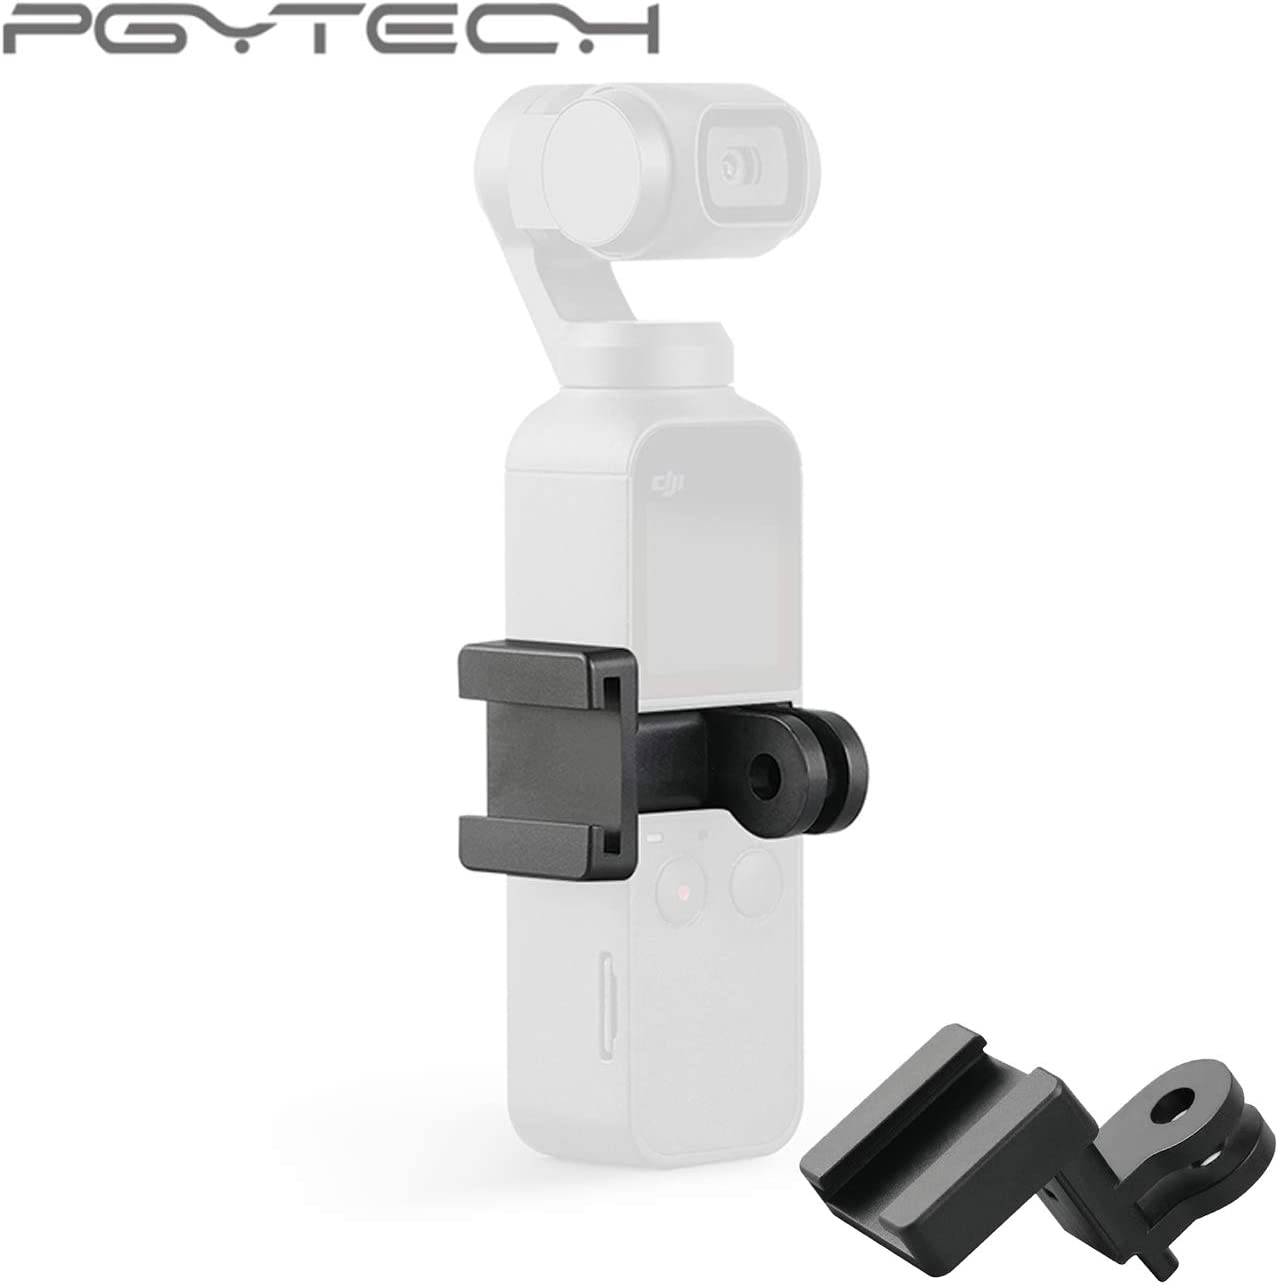 Original Smartphone Mic Microphone Audio Adapter TRS Plug Vlogging Compatible with DJI OSMO Pocket DJI Genuine 3.5mm Microphone Adapter+PGYTECH Phone Holder Plus+MM1 Pro Video Microphone